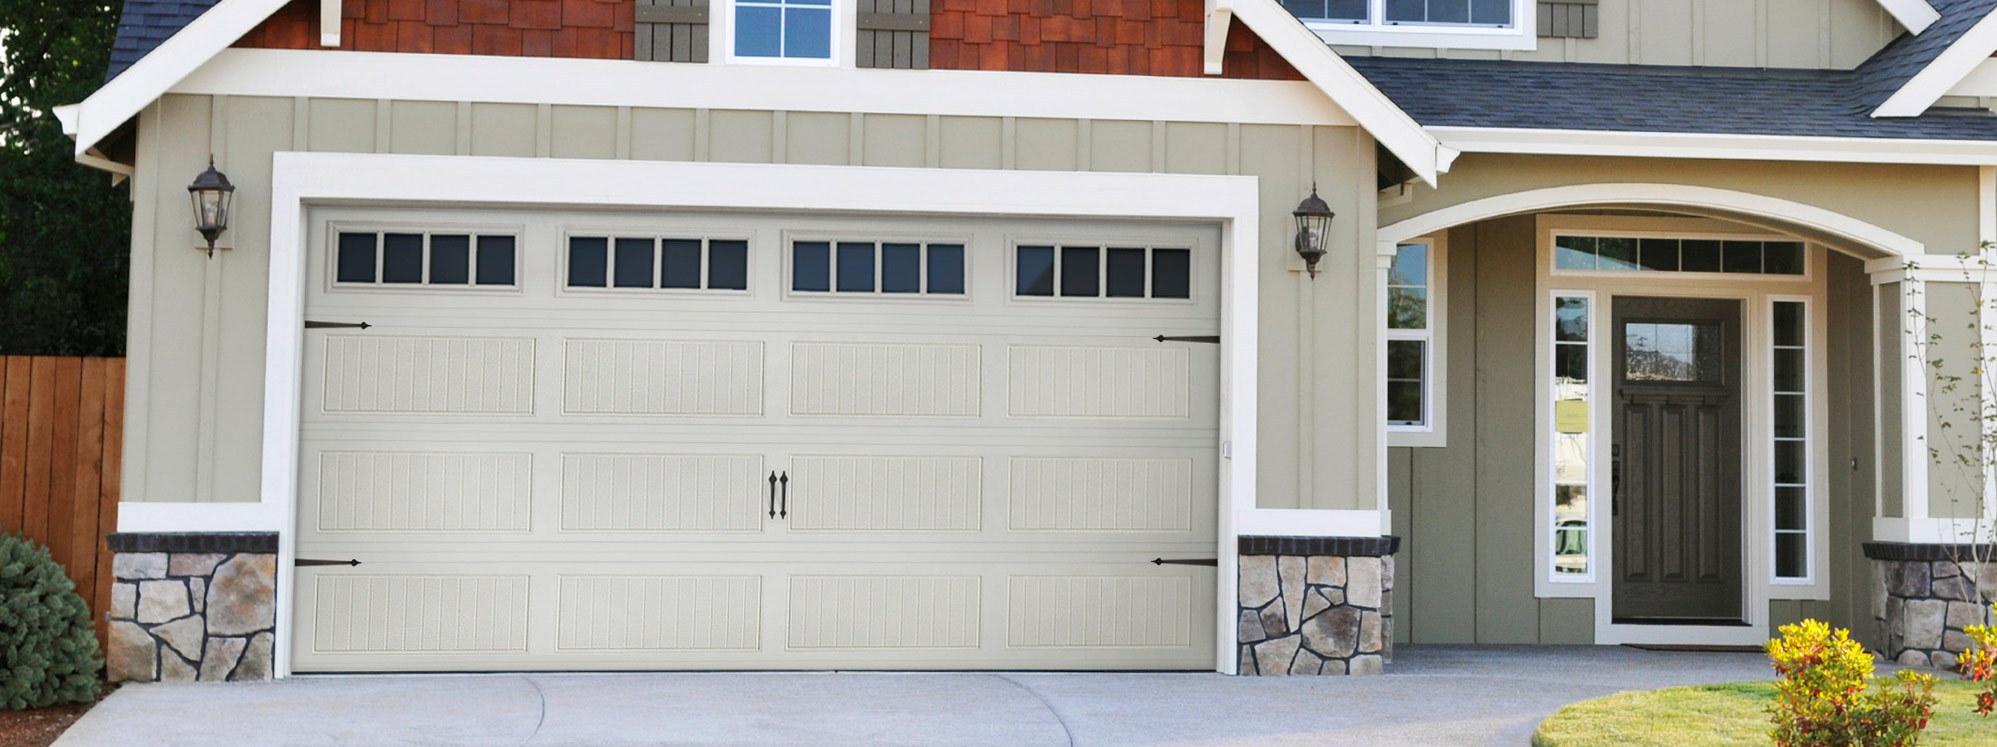 Garage redesign large and beautiful photos photo to select garage redesign design your home Redesign your home